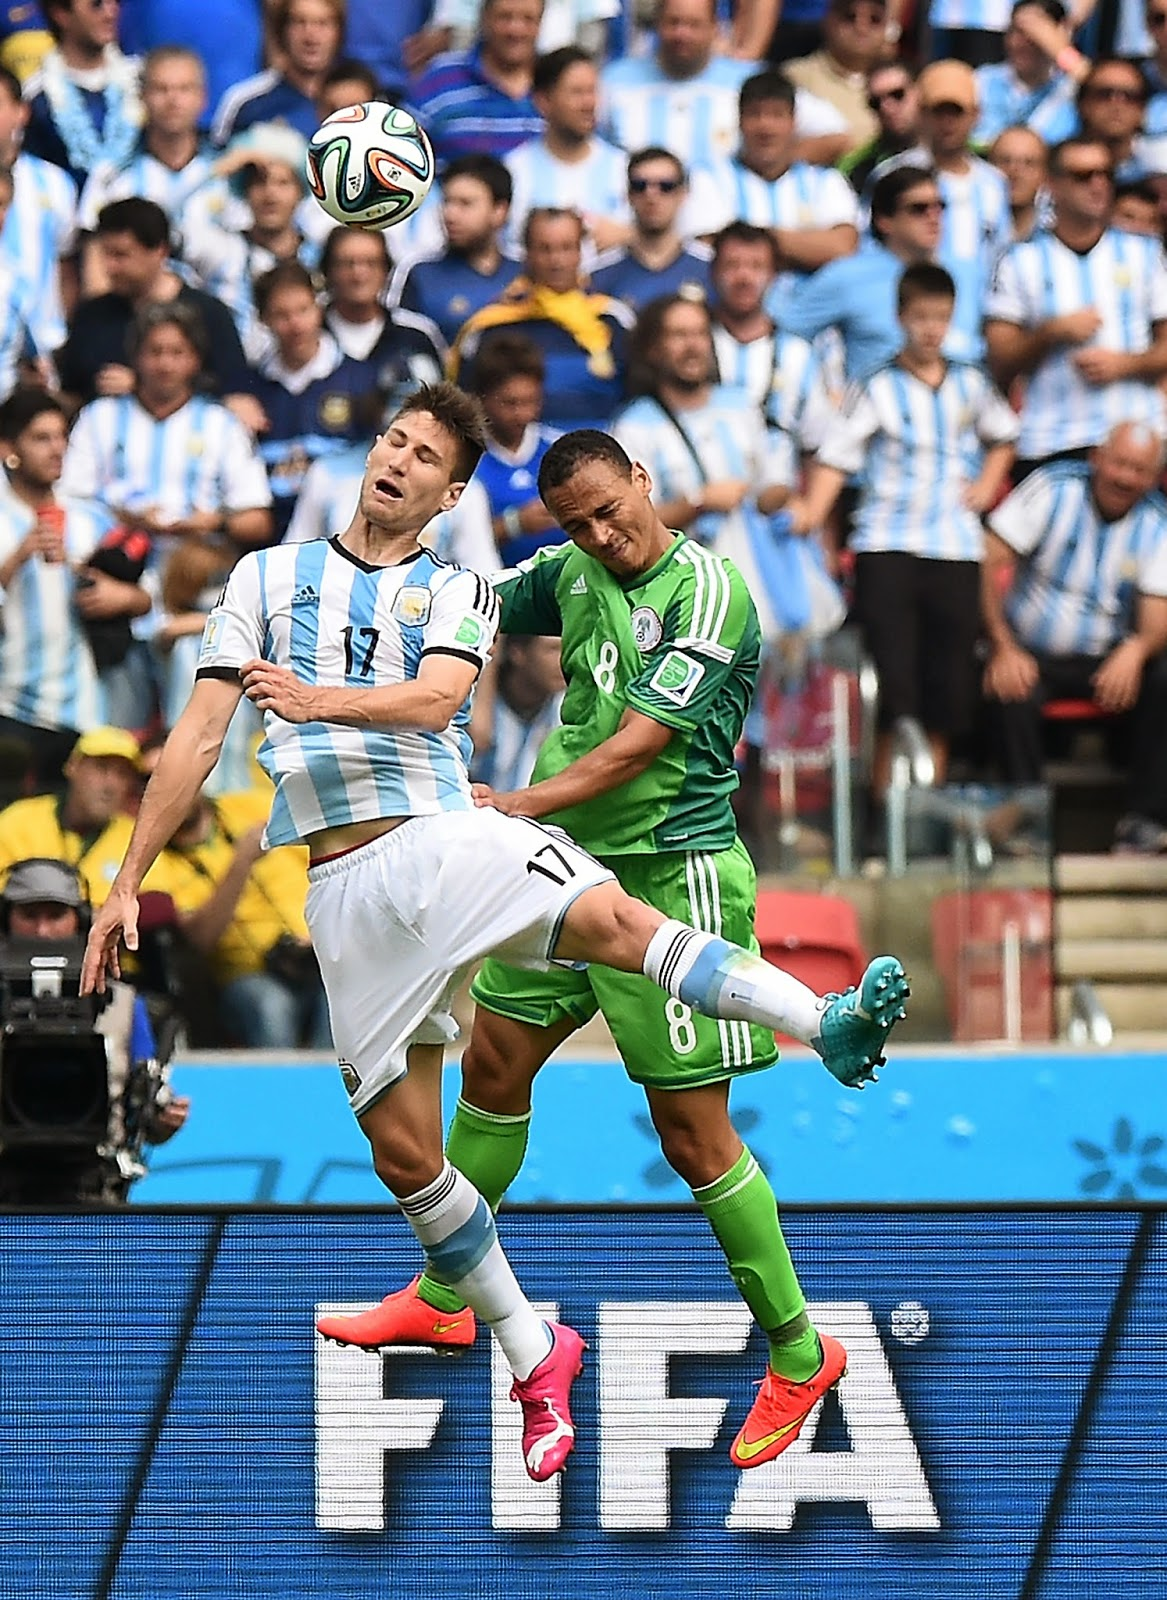 images archival store fifa world cup 2014 nigeria vs